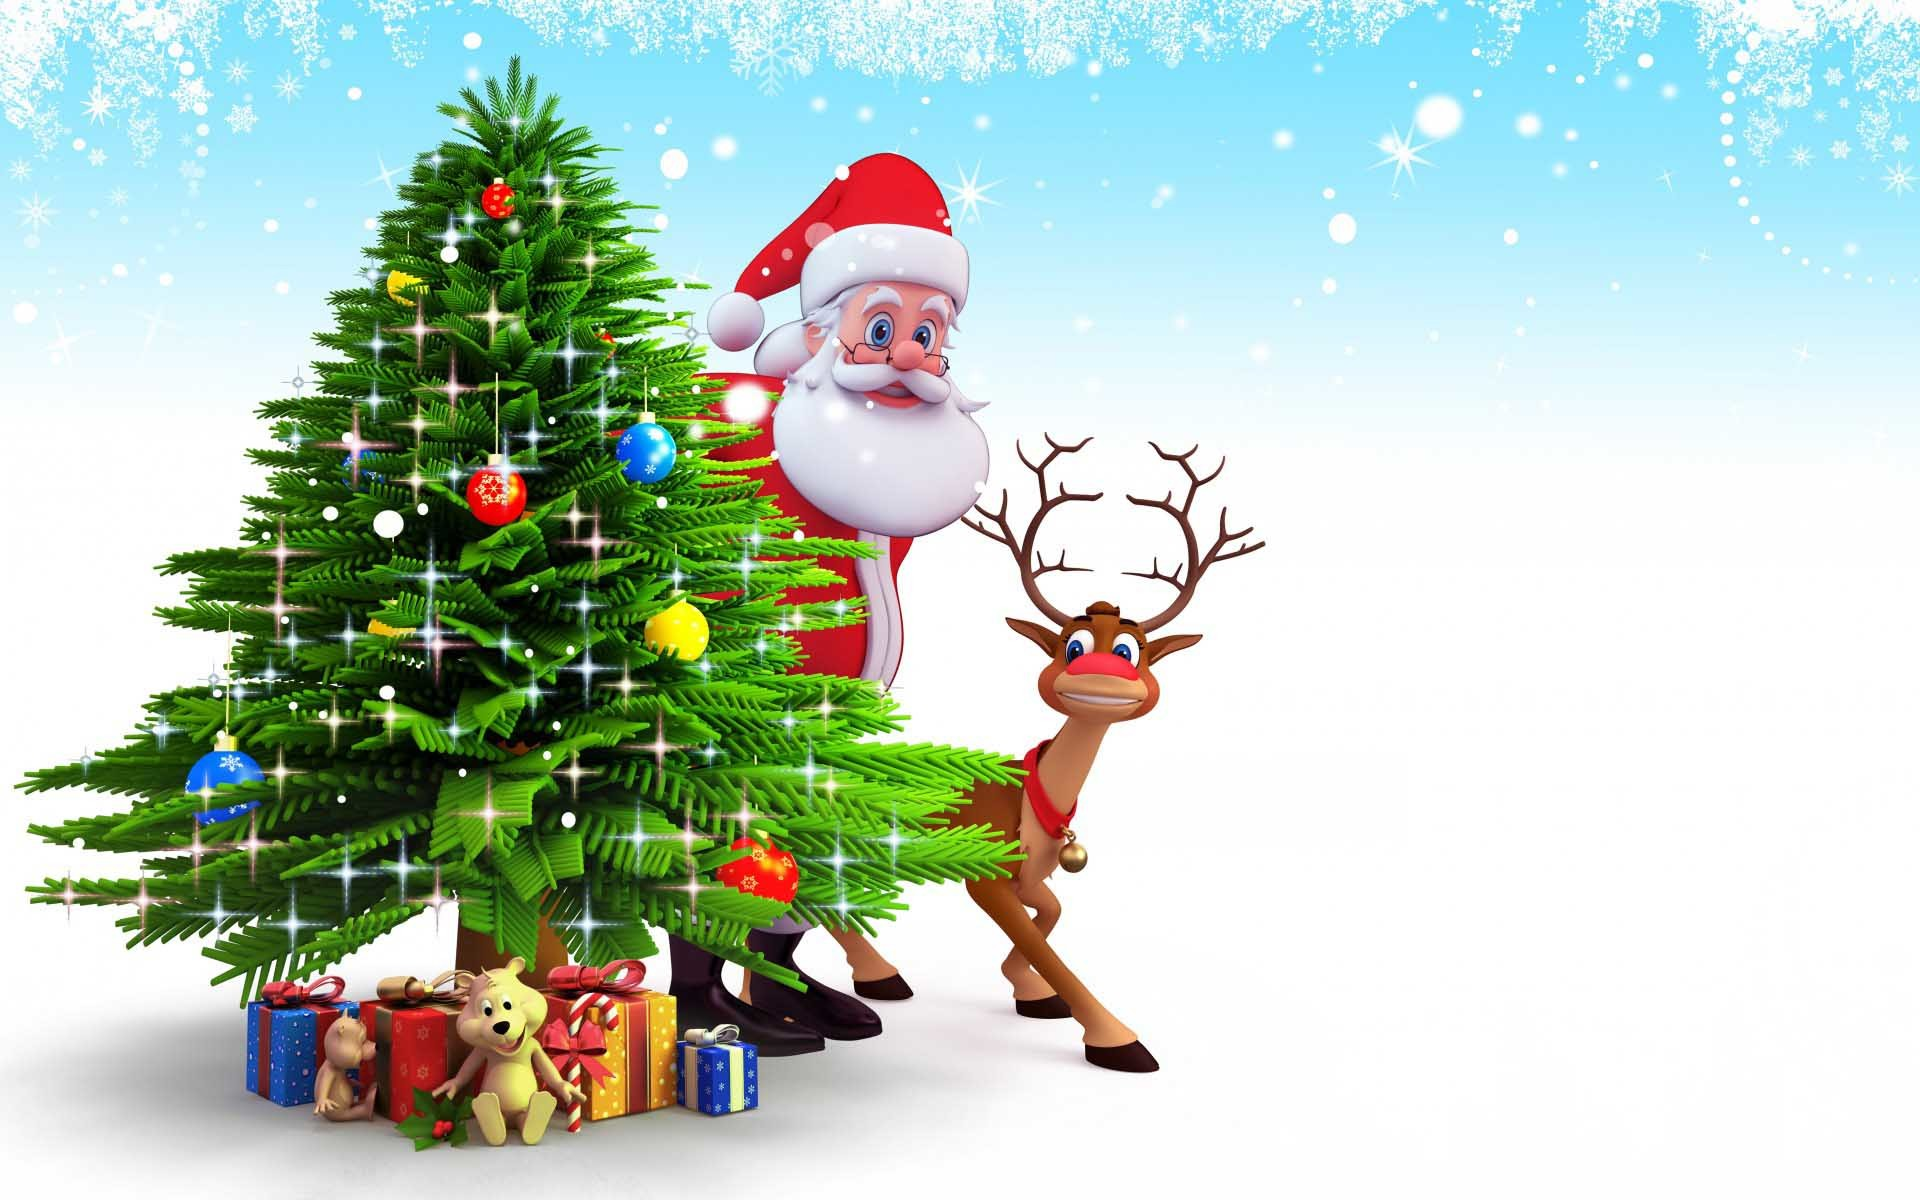 How To Make Live Wallpaper Iphone X 3d Christmas Backgrounds 183 ① Wallpapertag